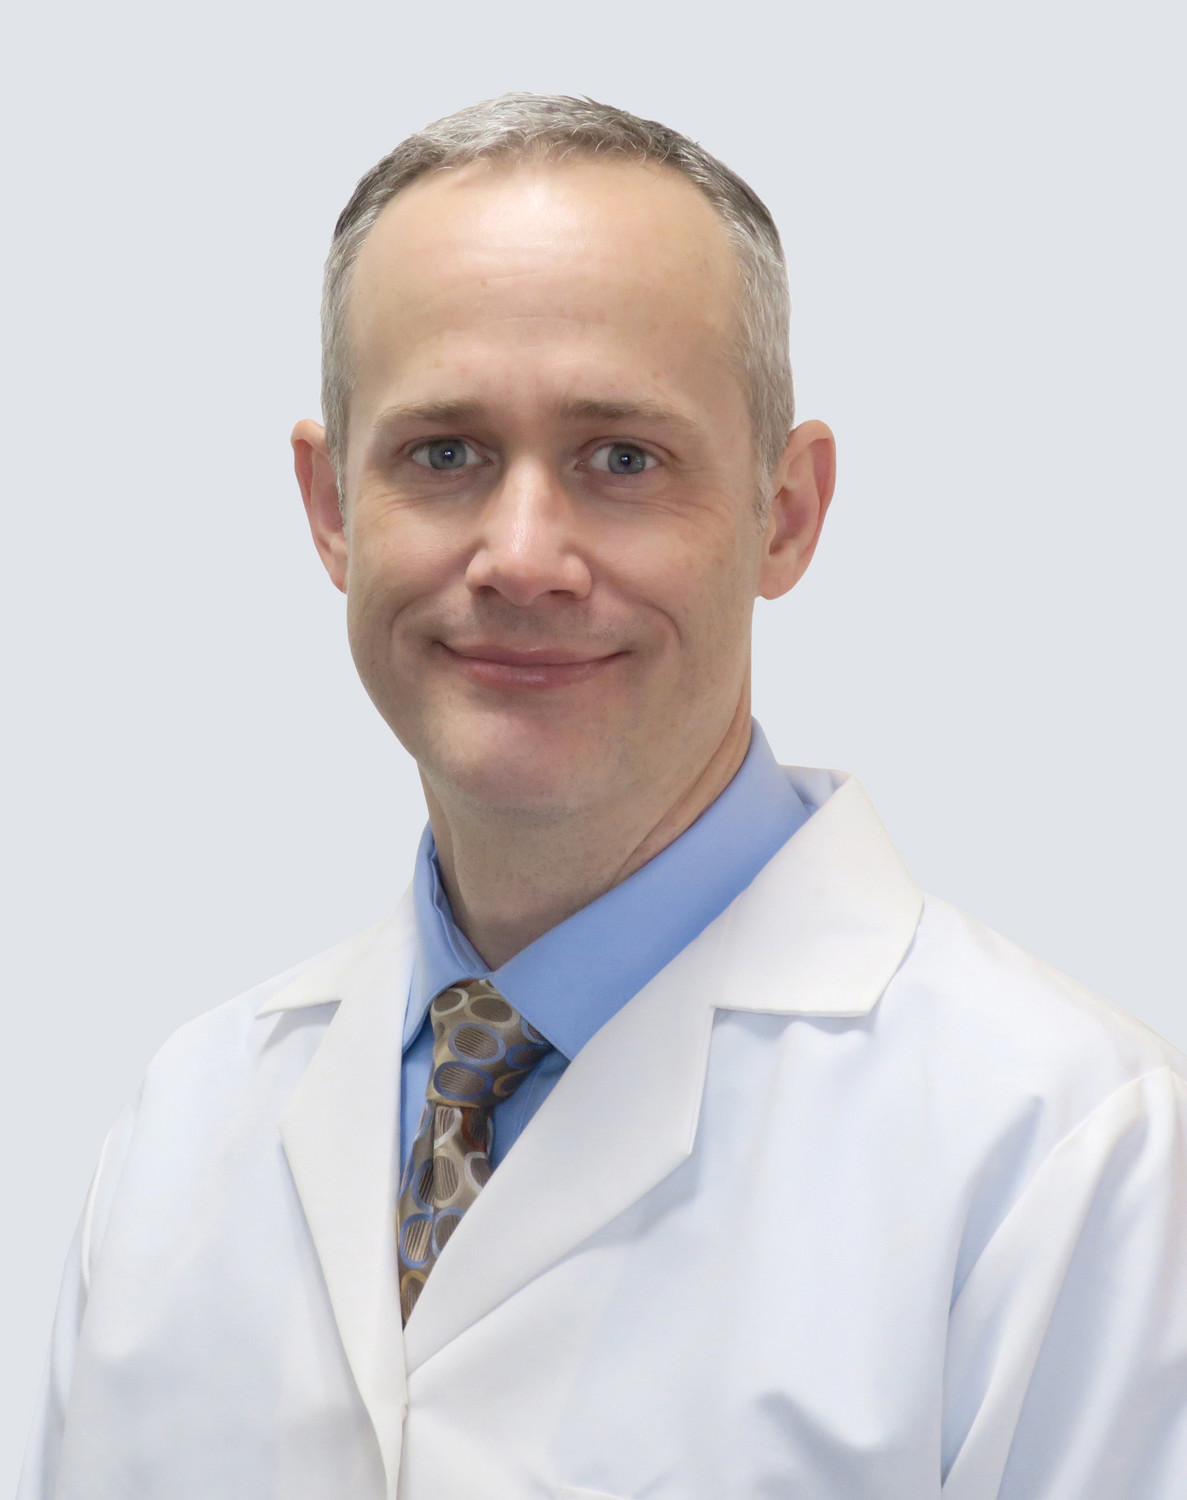 Obgyn Associates Of Attleboro Welcomes Obgyn Doctor James Pate